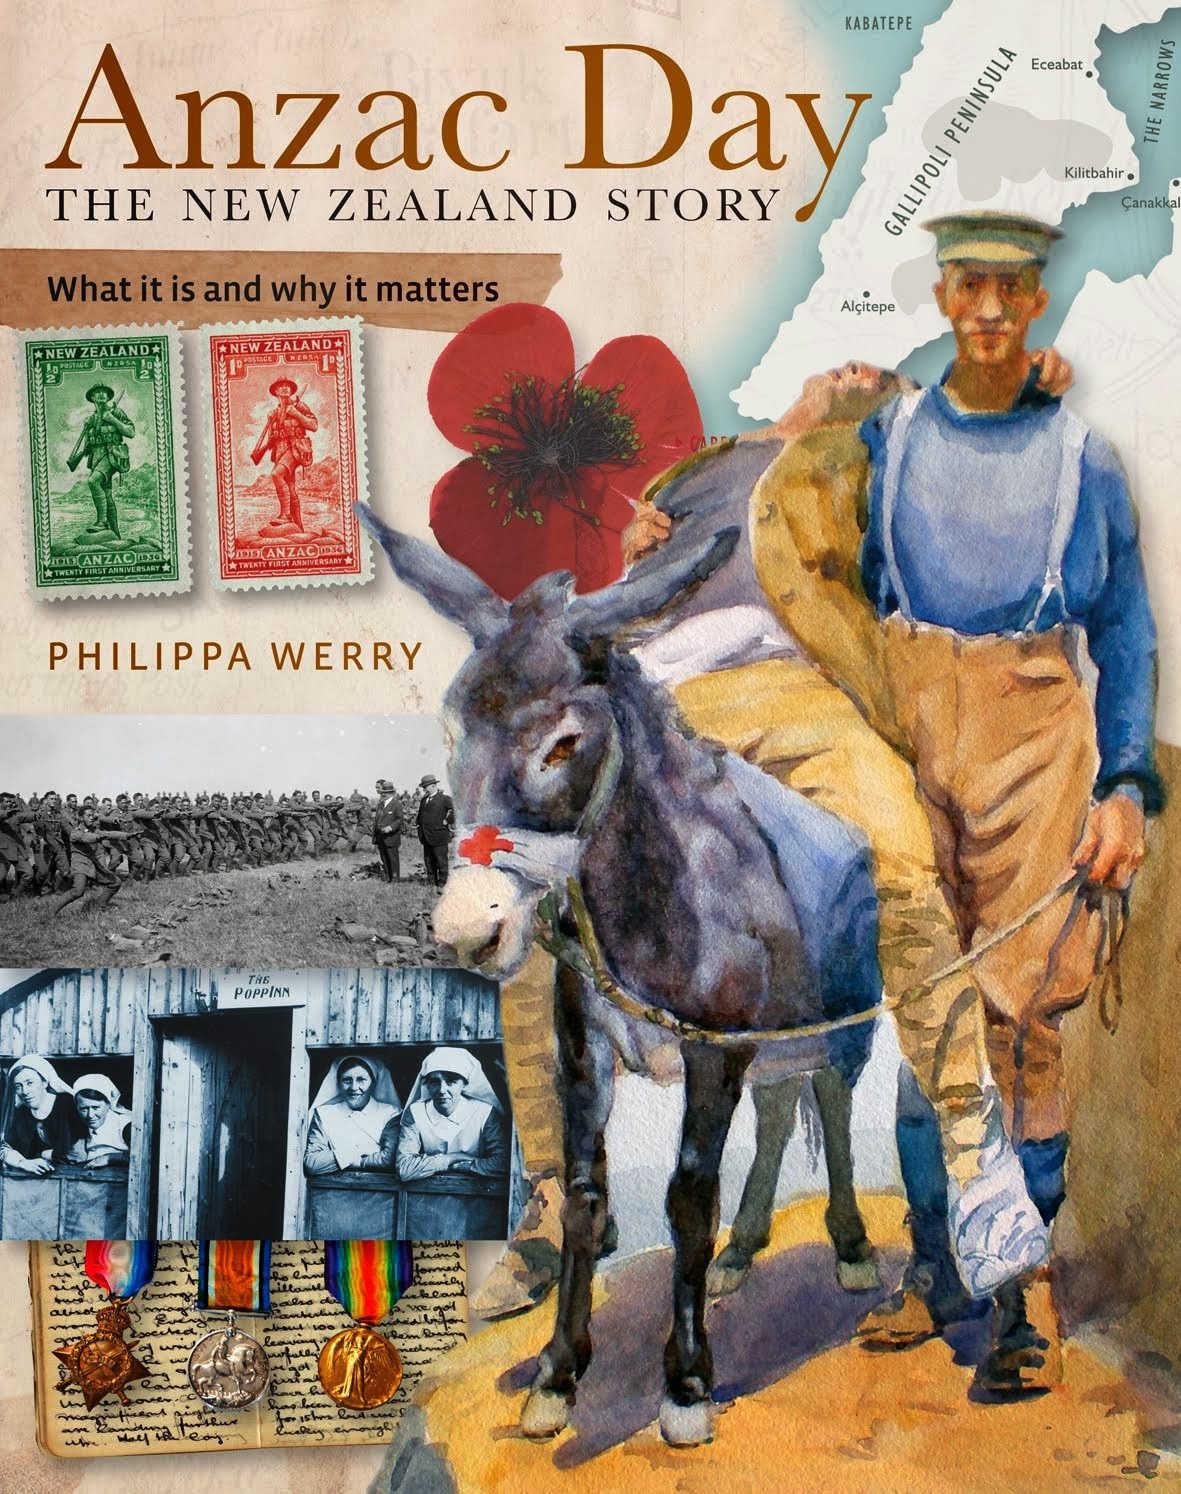 Anzac Day: the New Zealand story by Philippa Werry (New Holland, 2013)